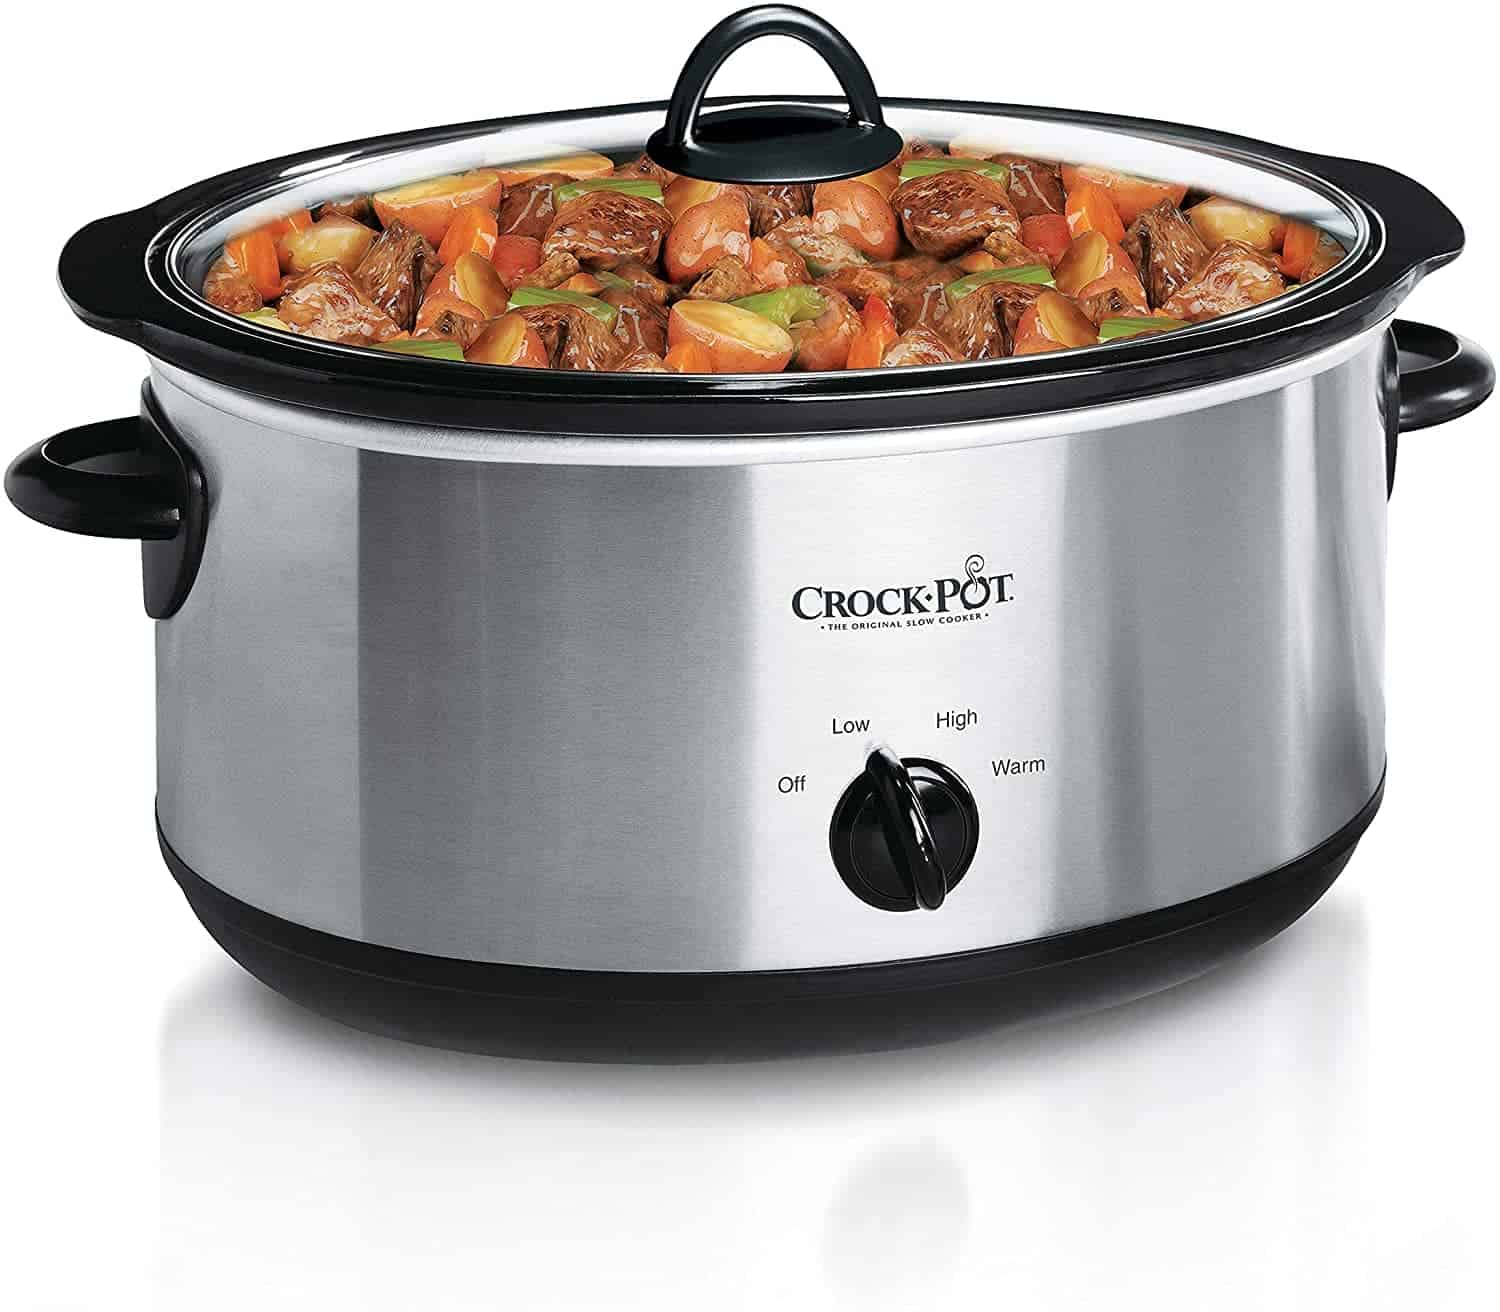 Crock-Pot Manual Slow Cooker in Stainless Steel